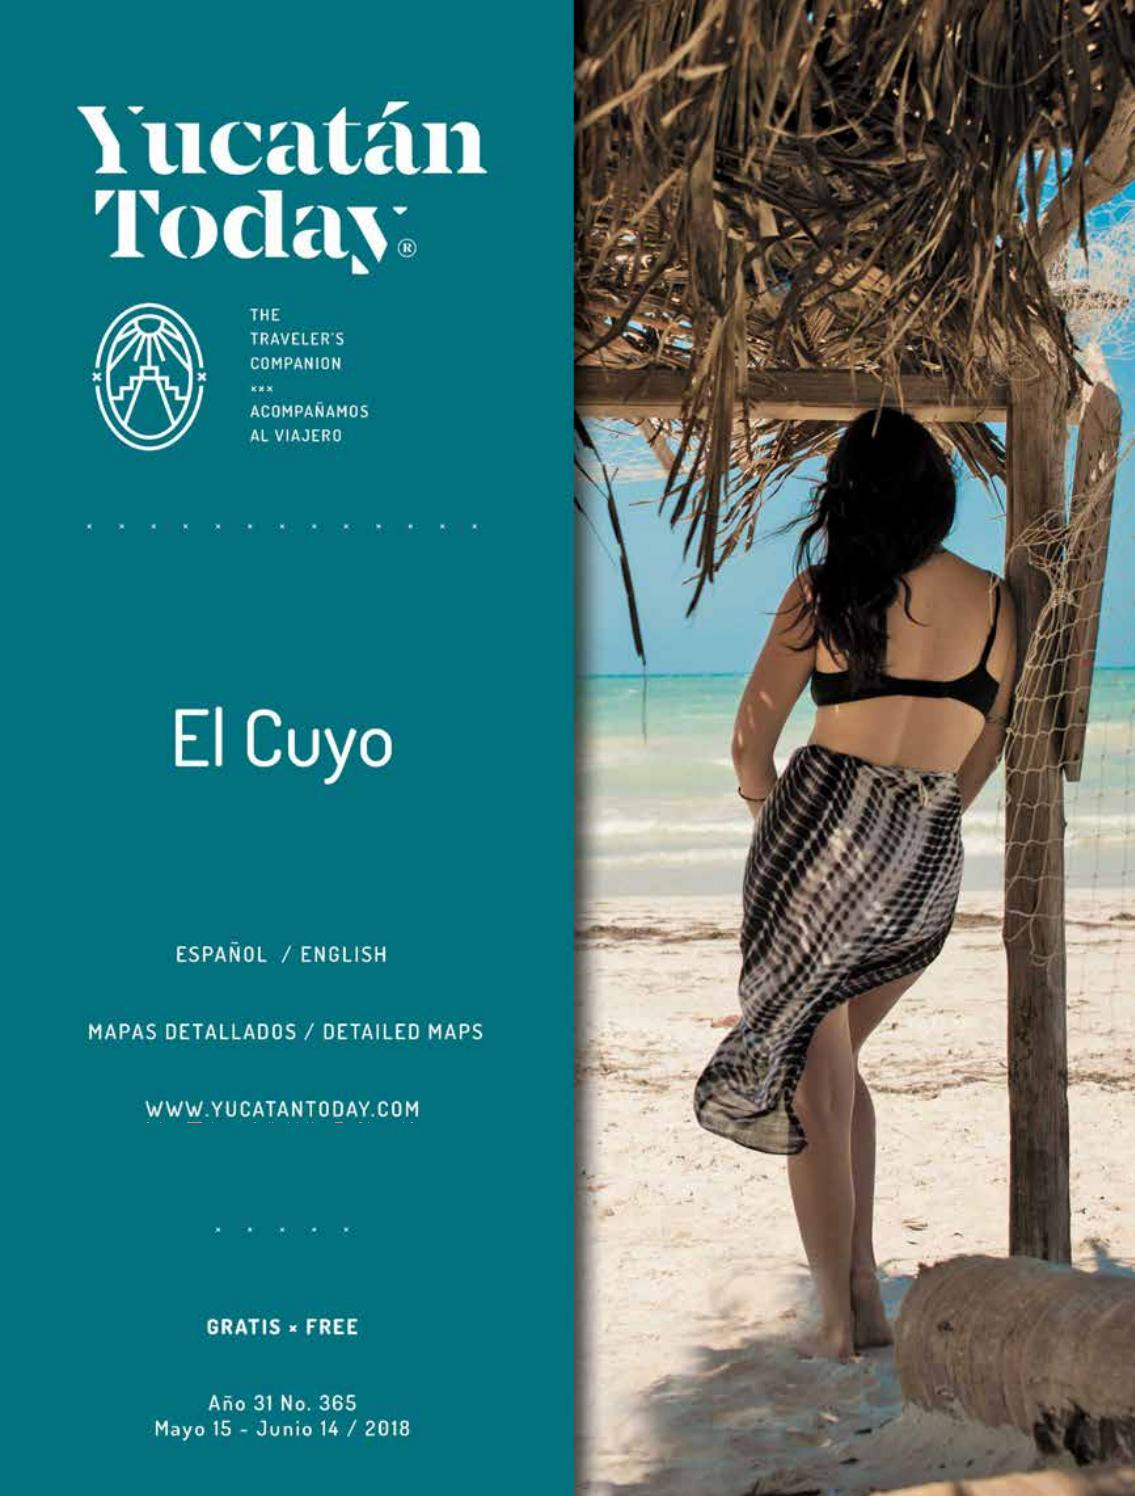 new style 73c9f d8eaa Yucatan Today May 15 - Jun 14, 2018 by Yucatan Today - issuu